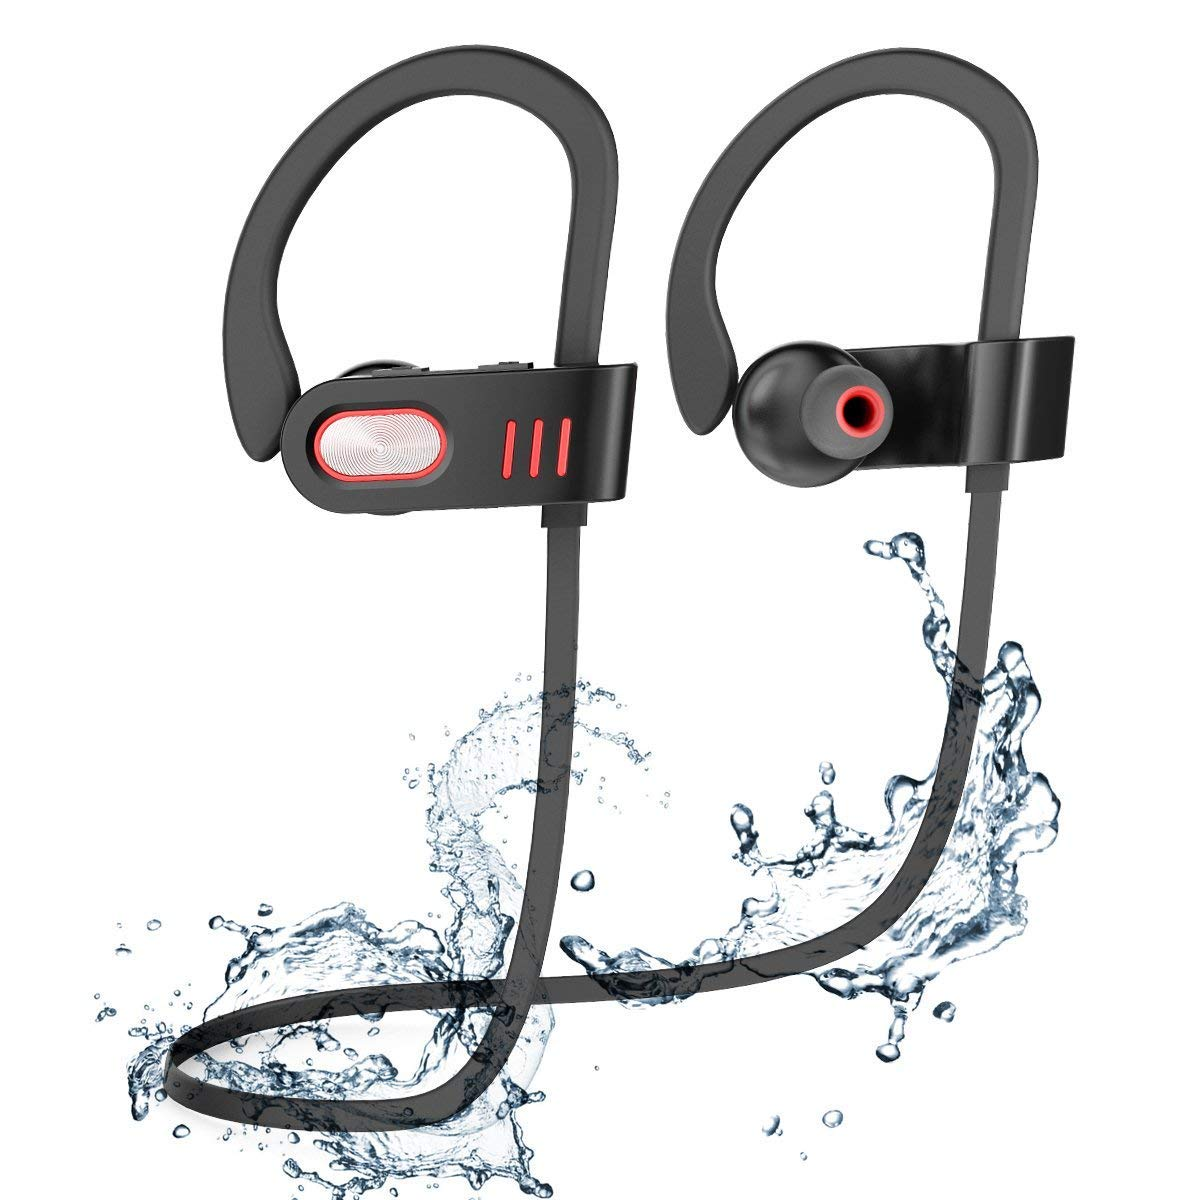 SDFLAYER V11-1 Bluetooth Headphones,V4.1 Wireless Earbuds Lightweight Heavy Bass Noise Isolating with Microphones Flat Cord Stereo Wireless Earbuds Headset Earphones for Running & Gym Black9